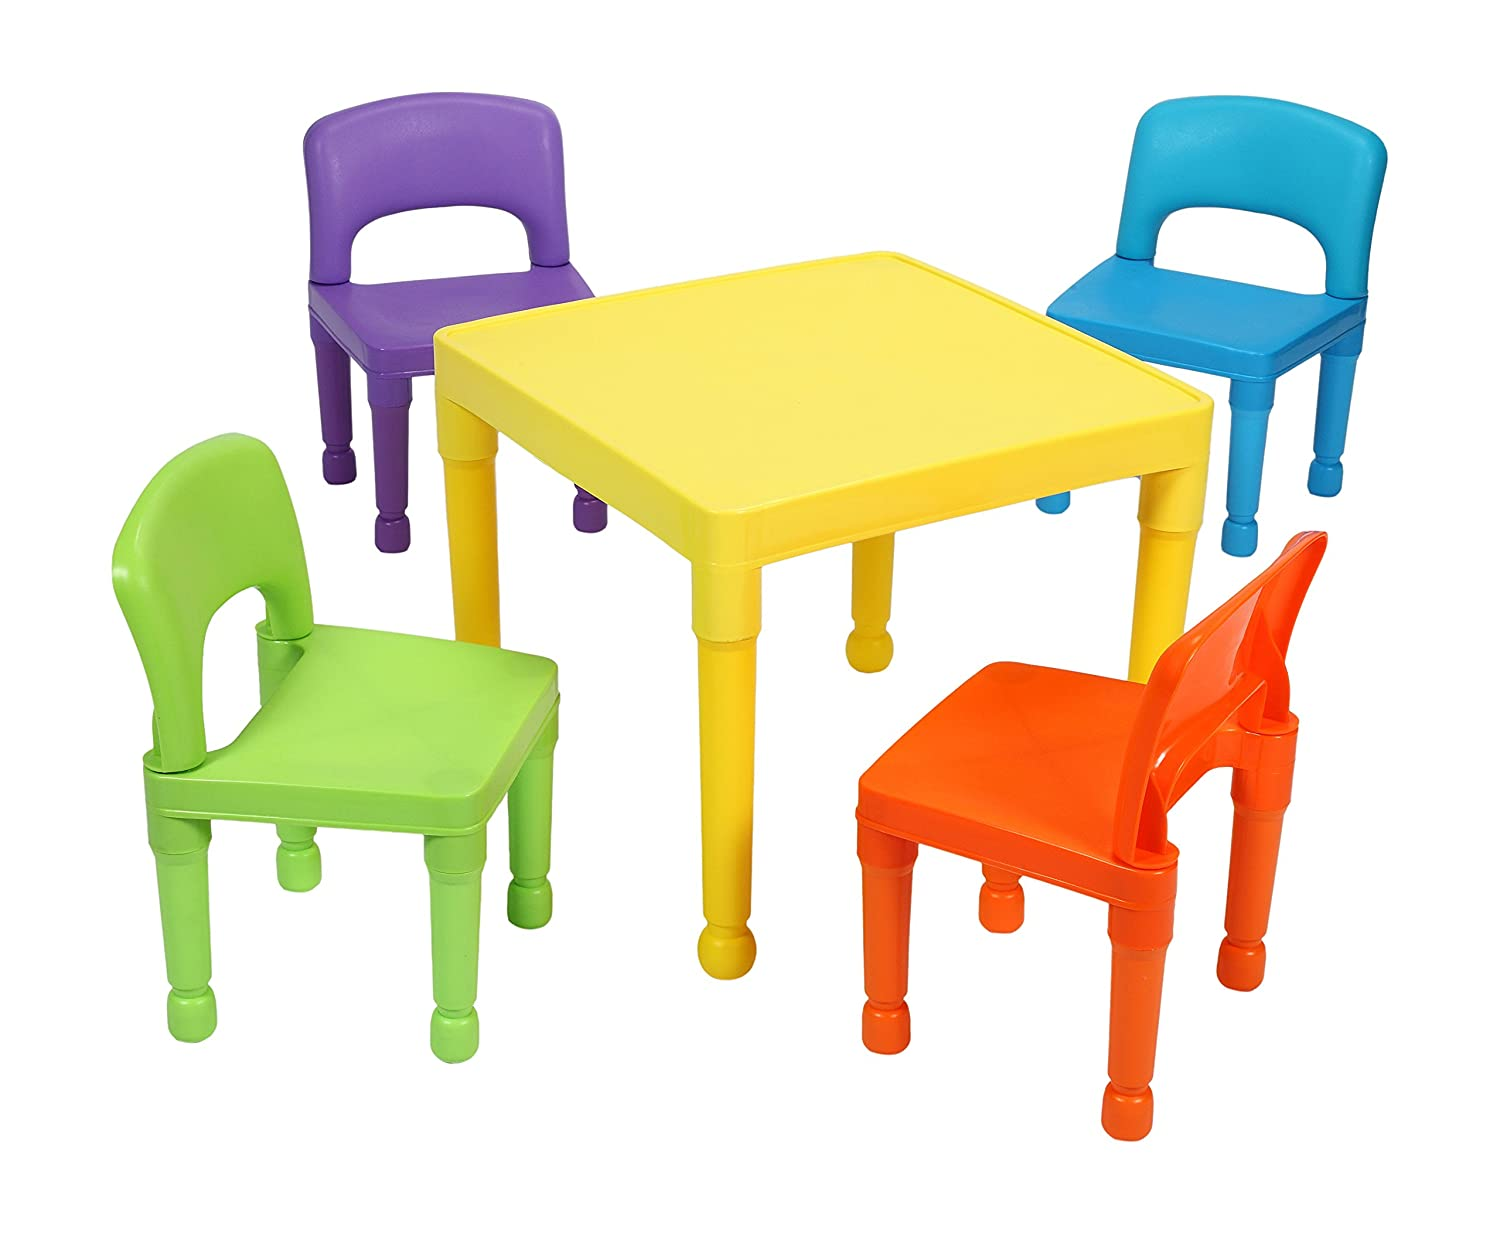 Liberty House Toys Children's Table and 4 Chairs Set, Plastic, Multi-Colour 8809N